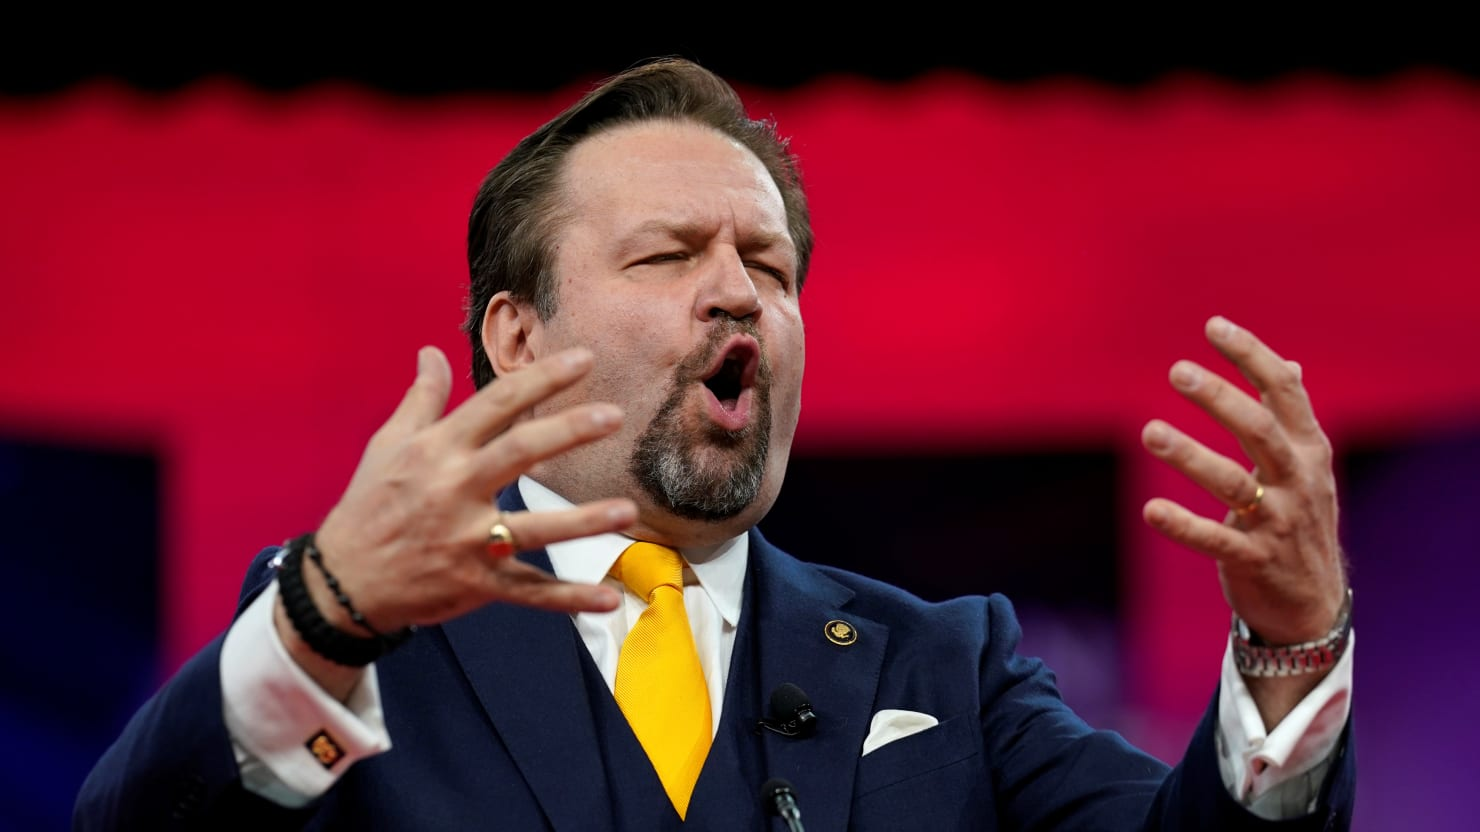 Seb Gorka Rages Against Cartoon Rat's Gay Wedding: 'This Is a War for Our Culture'